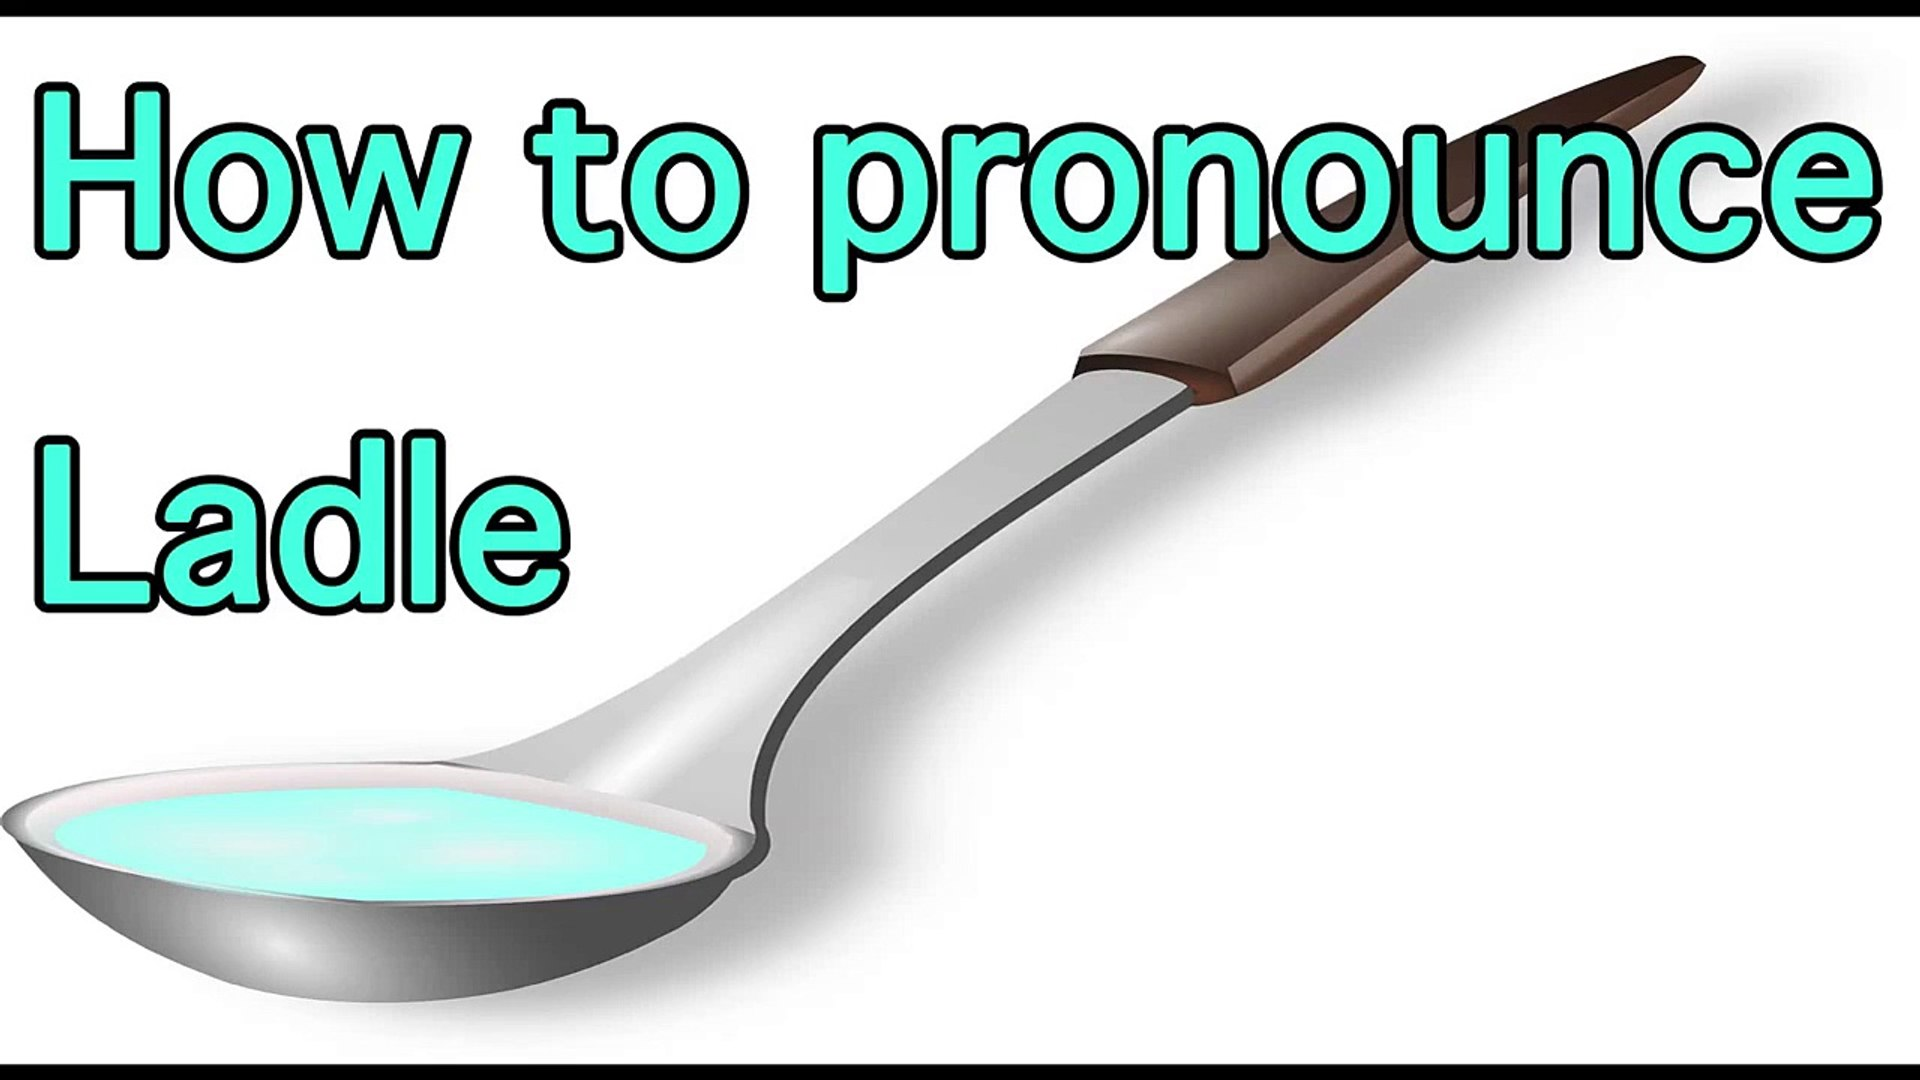 """How to pronounce """"Ladle"""" in Japanese おたま Cook Tool 料理道具"""